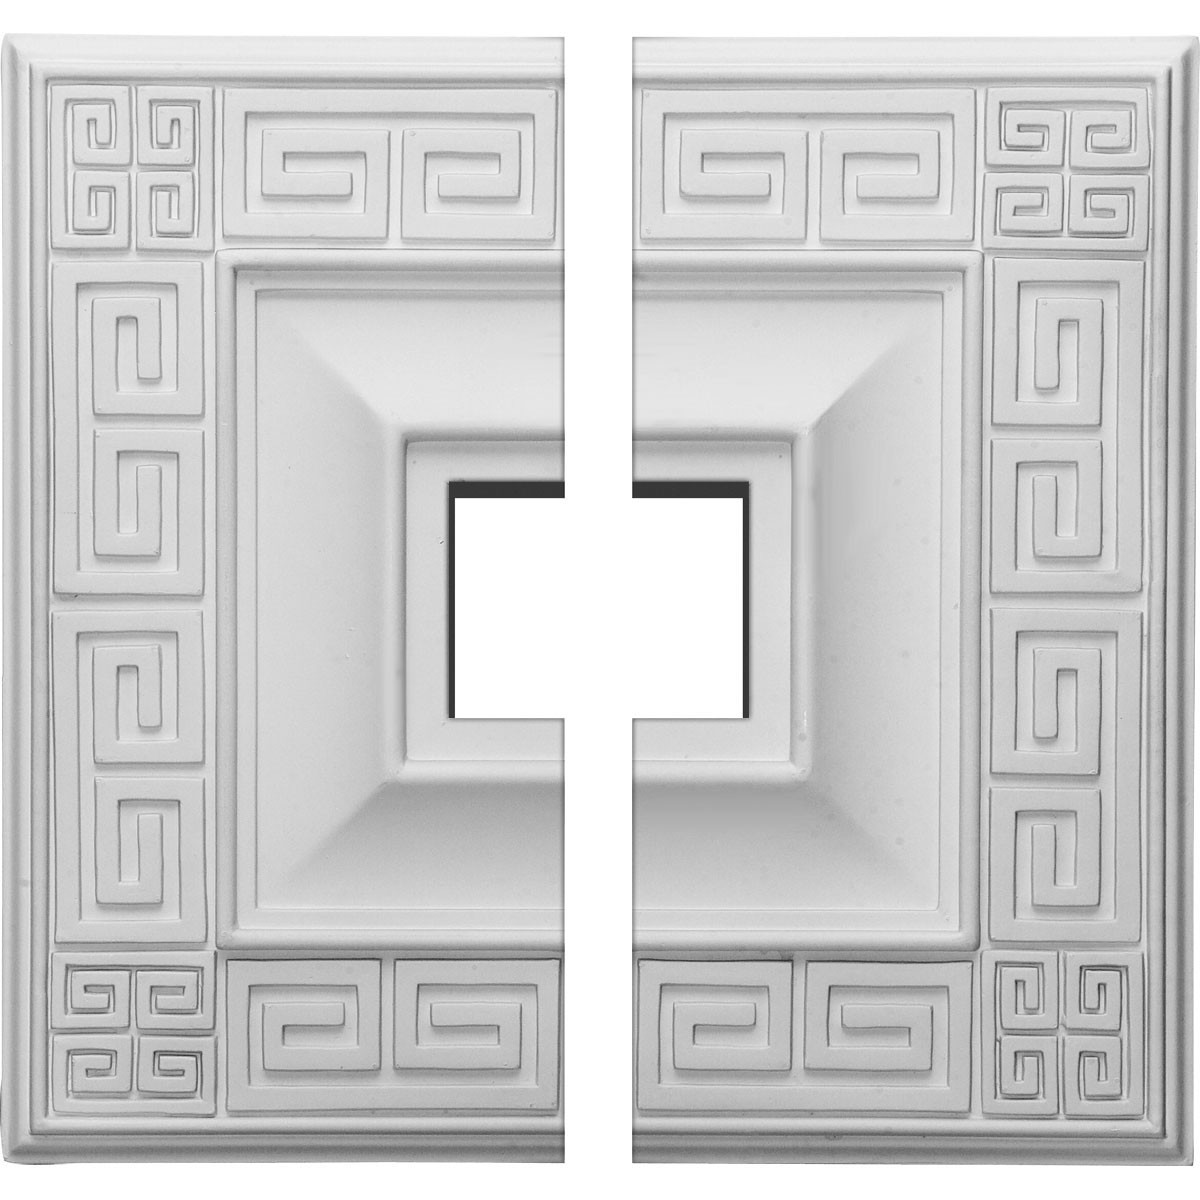 """EM-CM18ER2 - 18""""W x 18""""H x 3 1/2""""ID x 1 1/8""""P Eris Ceiling Medallion, Two Piece (Fits Canopies up to 9 7/8"""")"""